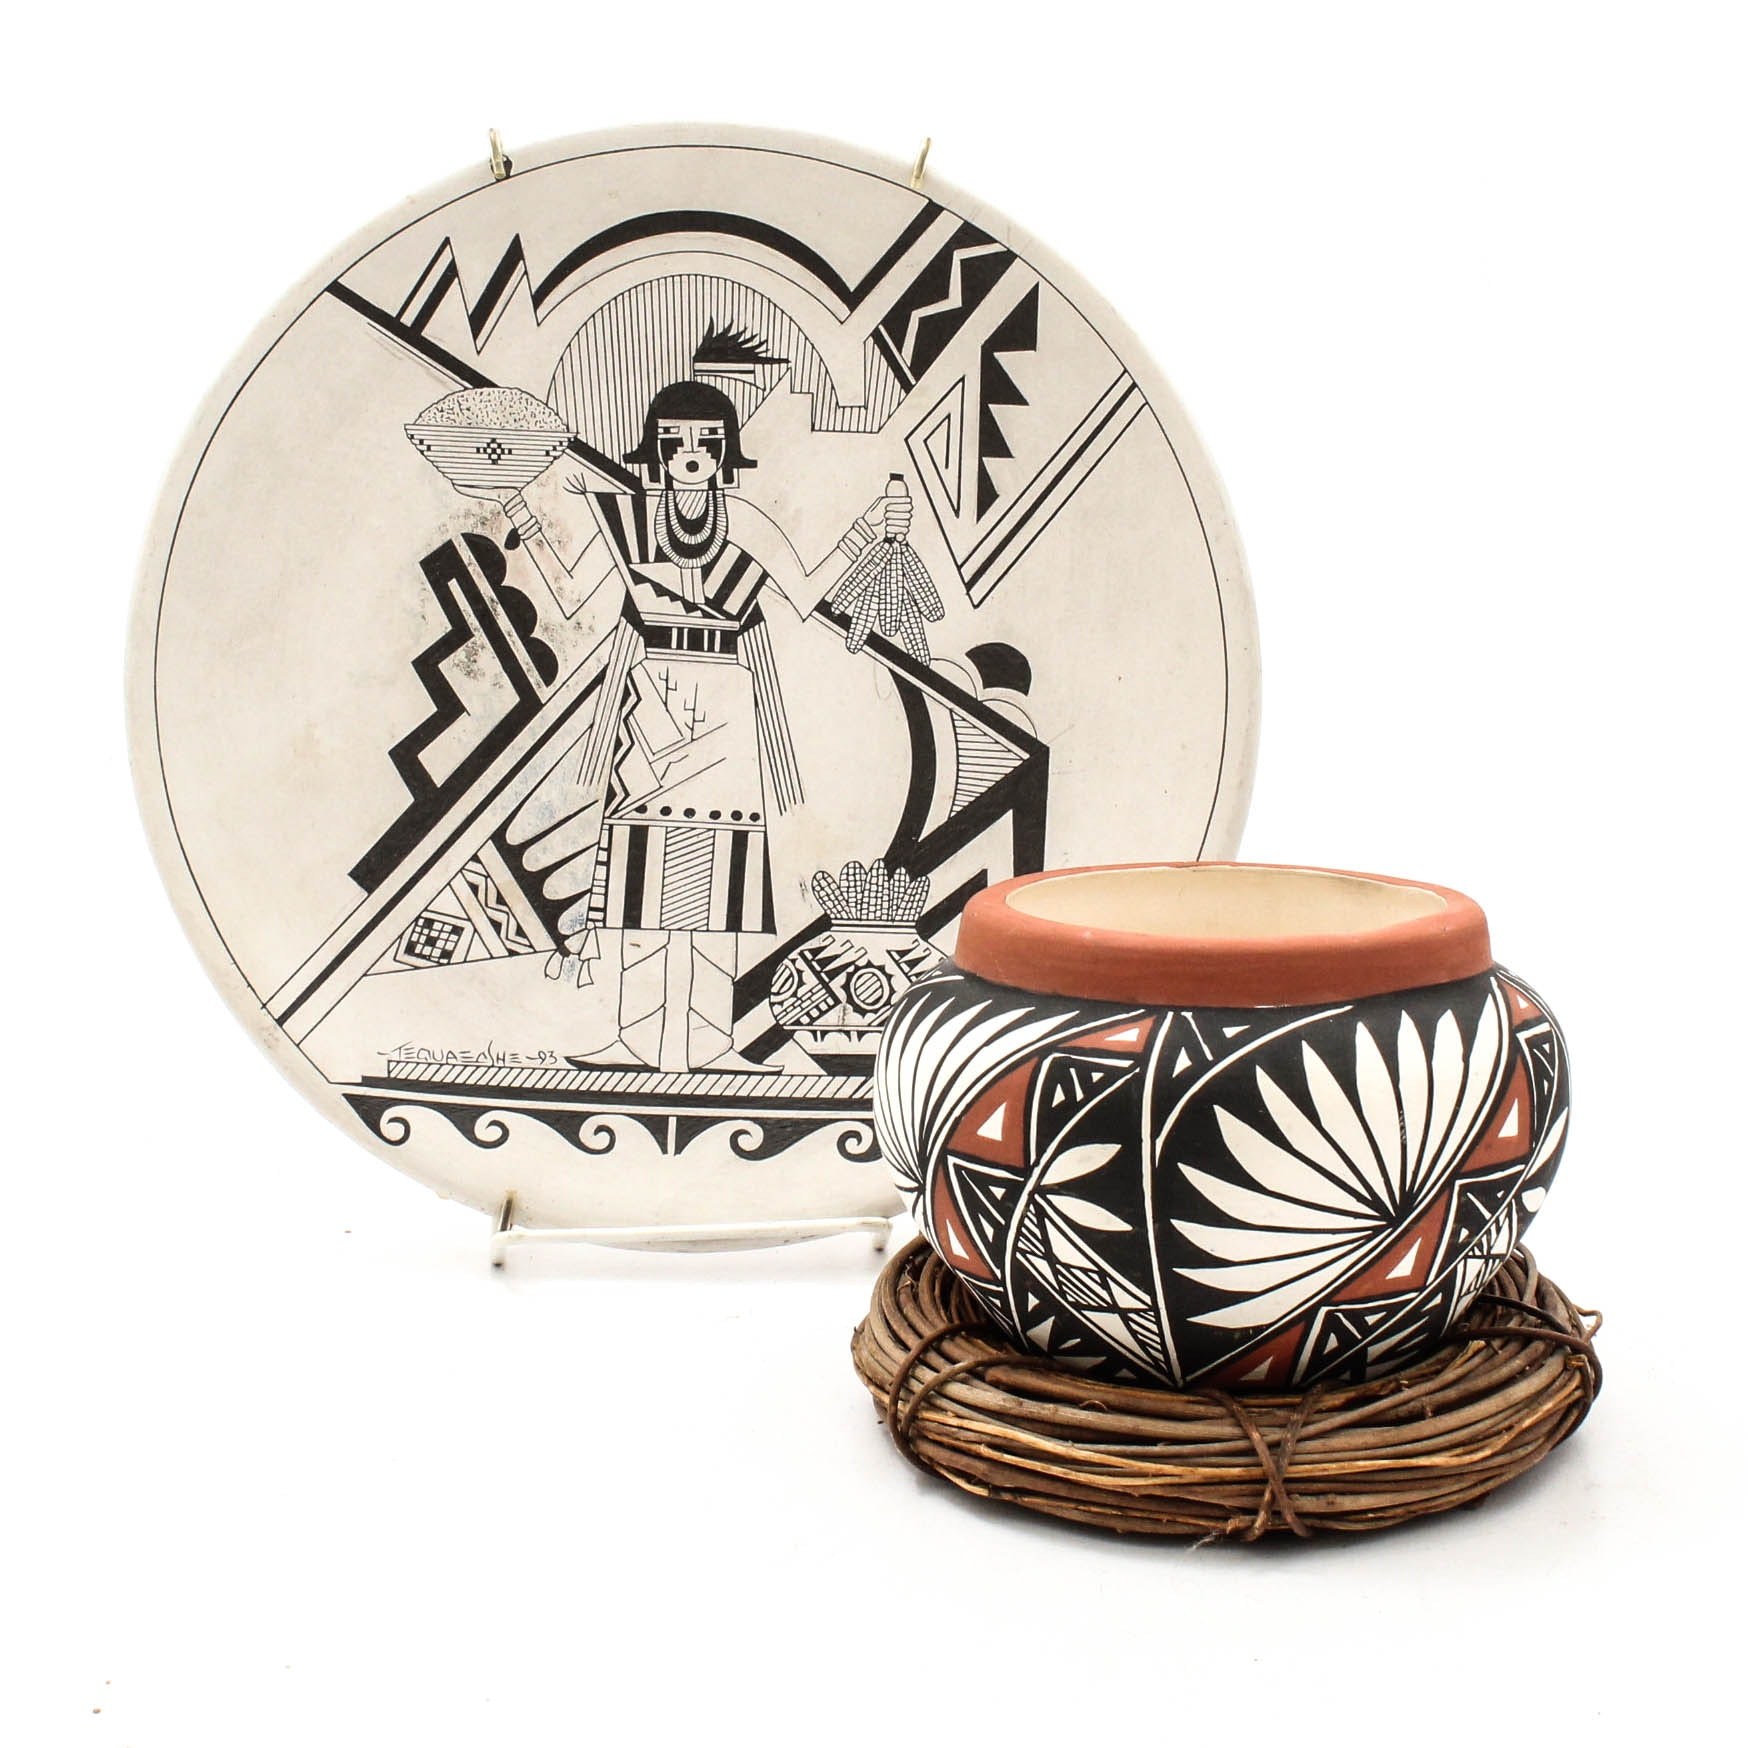 Native American A. Shroulot Hand-Painted Acoma Pot and Tequaecshe Plate